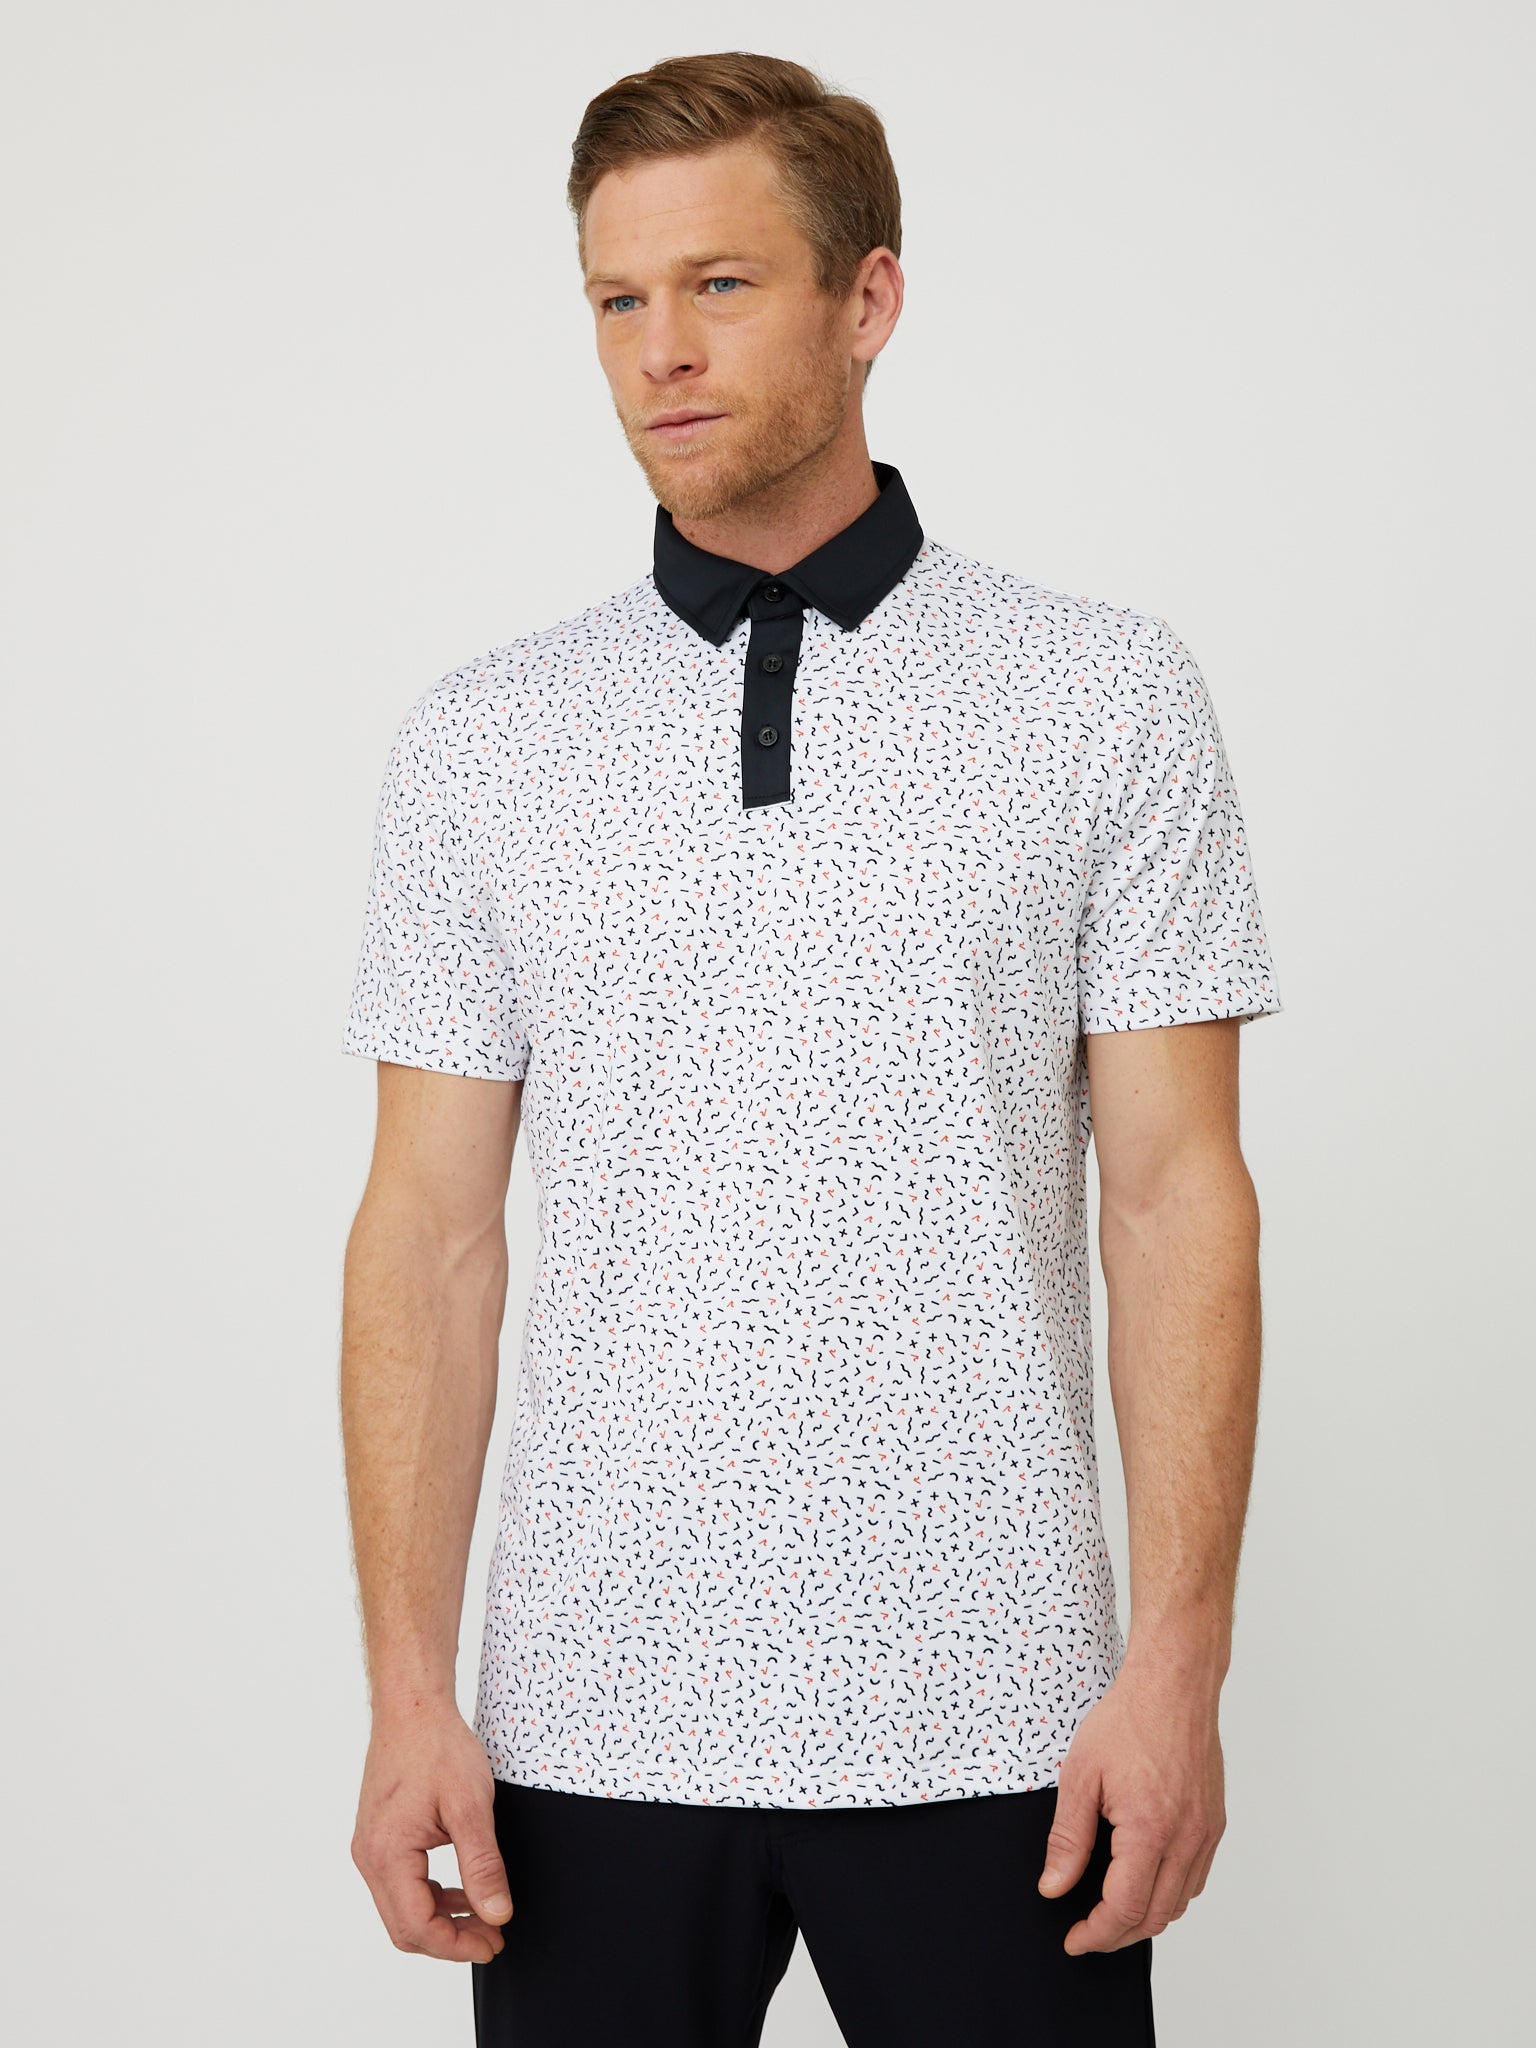 Stanley Polo in White/Multi